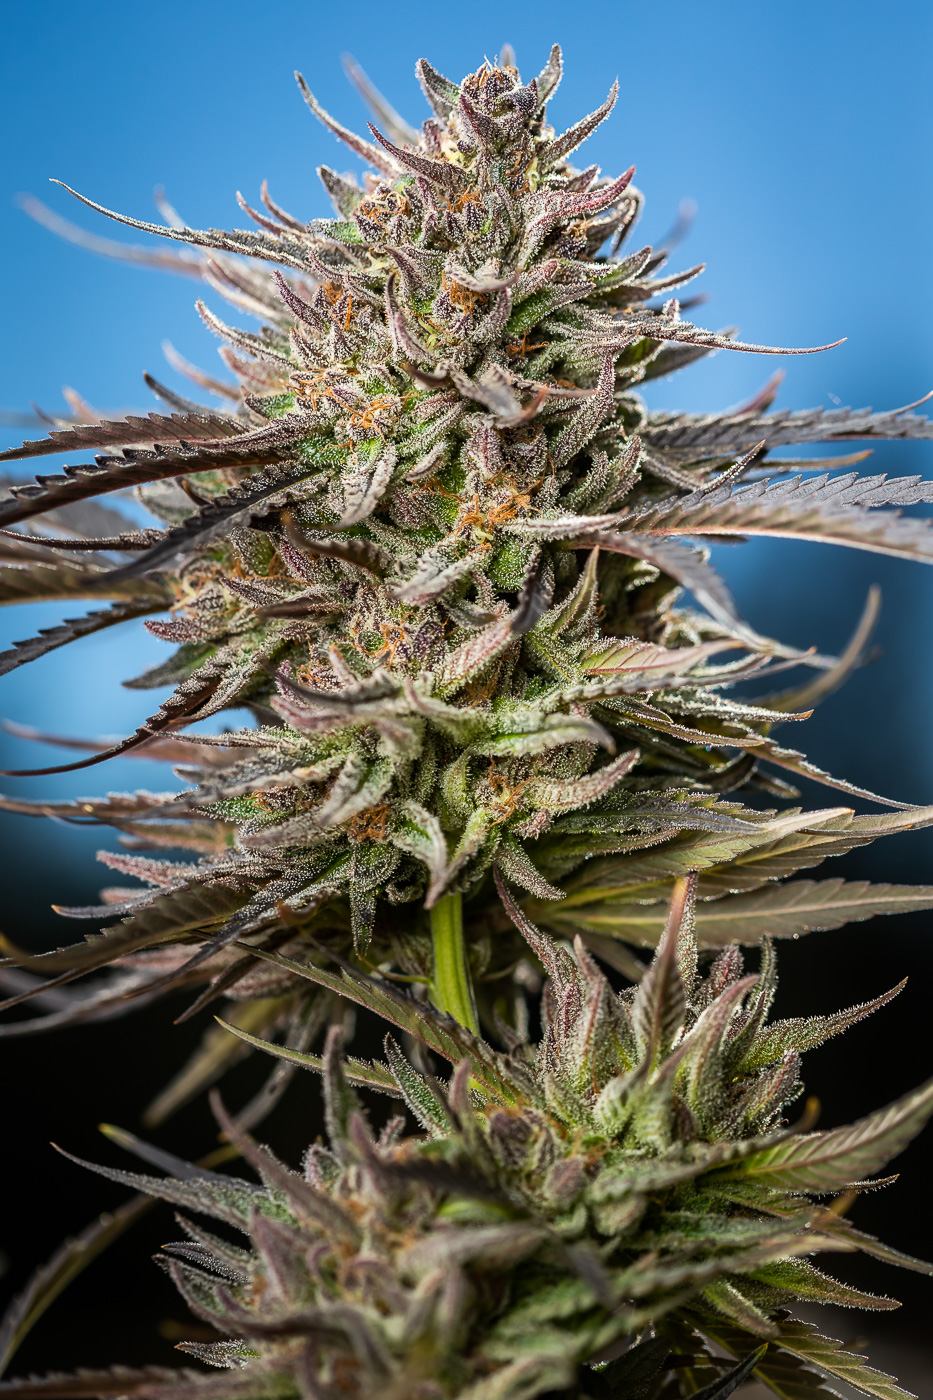 GLUEBERRY - Total Cannabinoids - 26.2%THC - 22.19%TERPENES - 5.171%